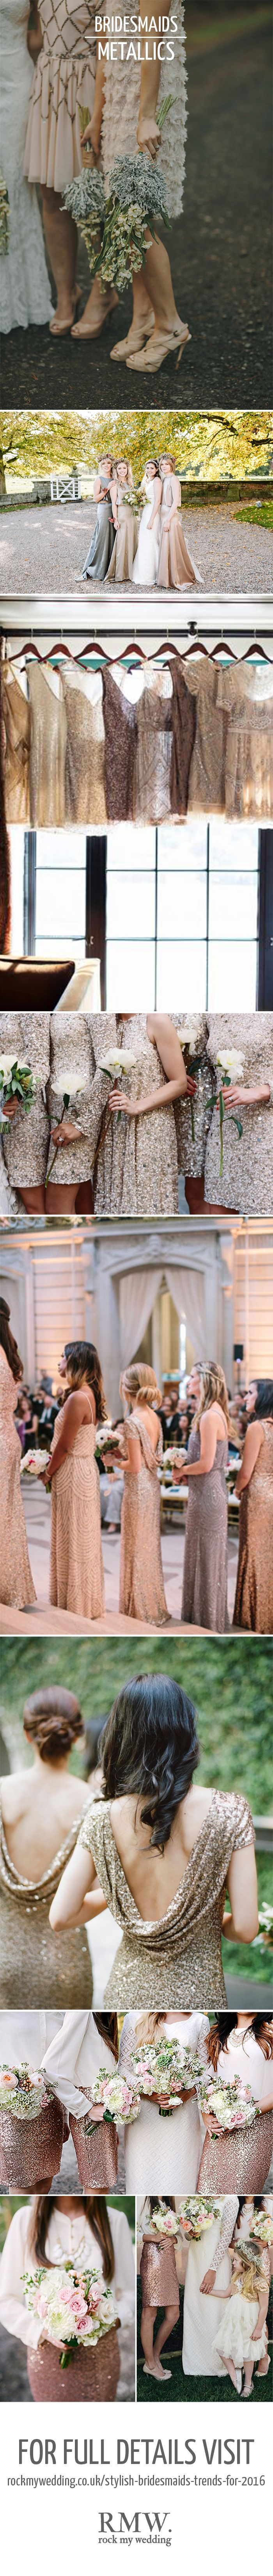 Metallic Bridesmaids Dresses | Bridesmaid Inspiration | http://www.rockmywedding.co.uk/stylish-bridesmaids-trends-for-2016/